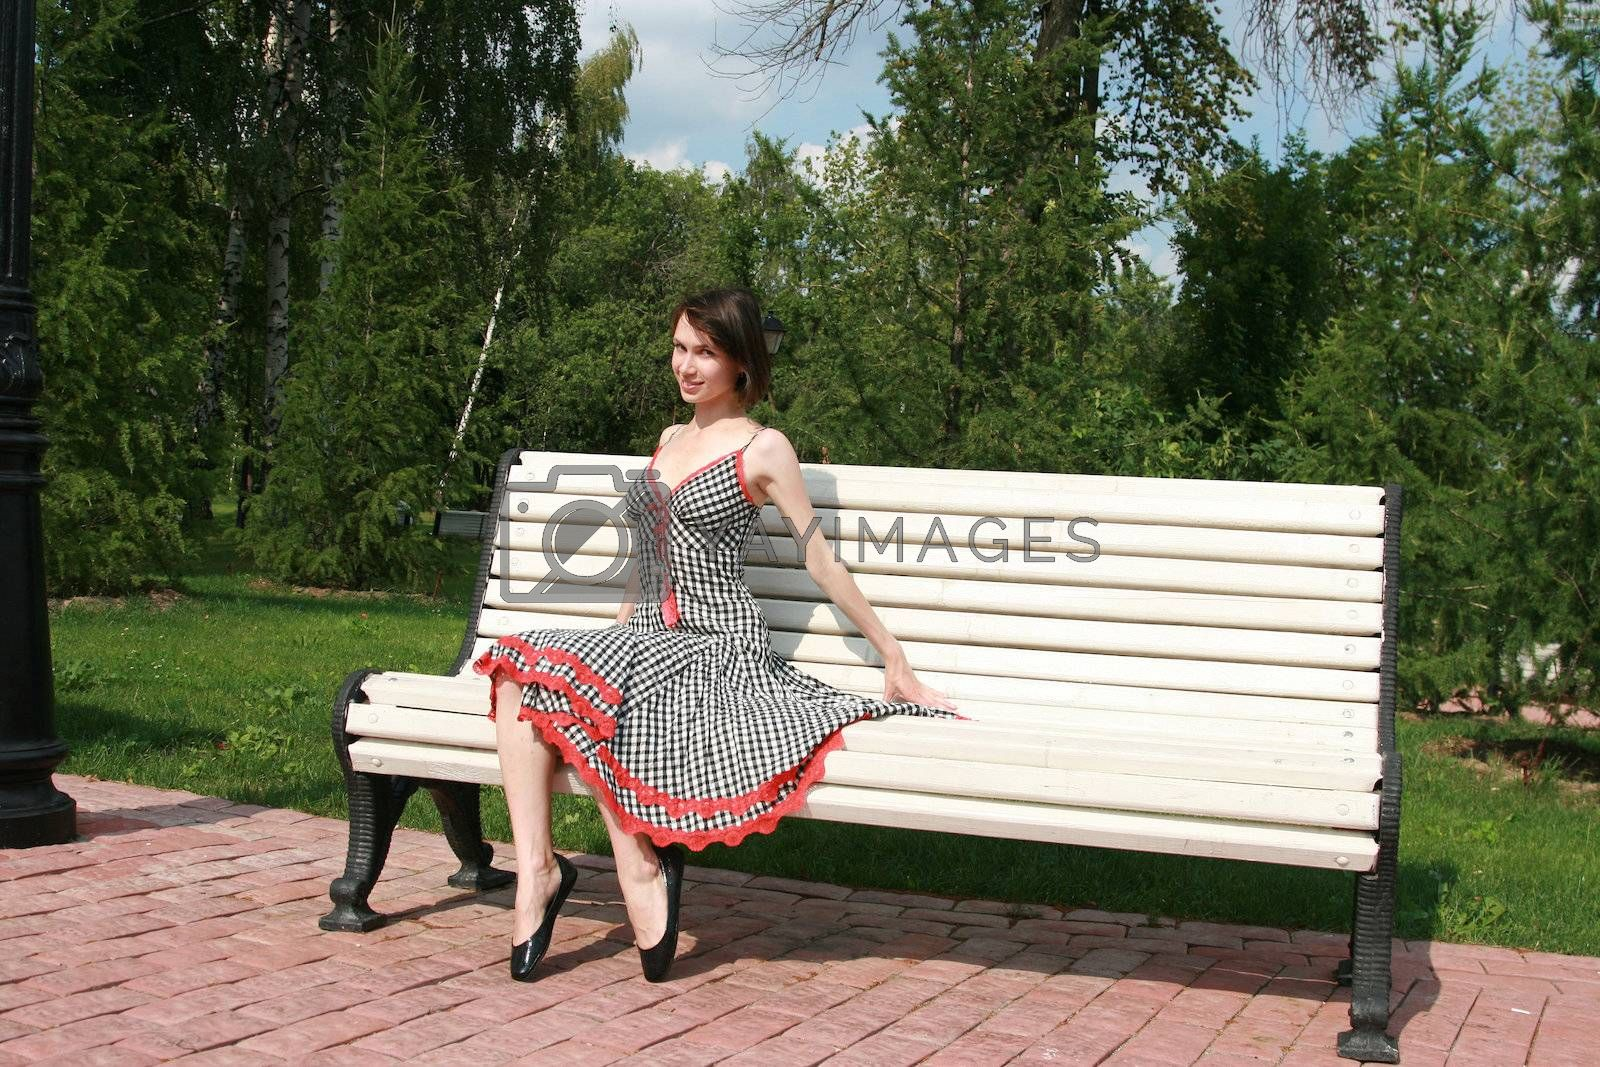 The girl sits on a bench and coquettishly poses